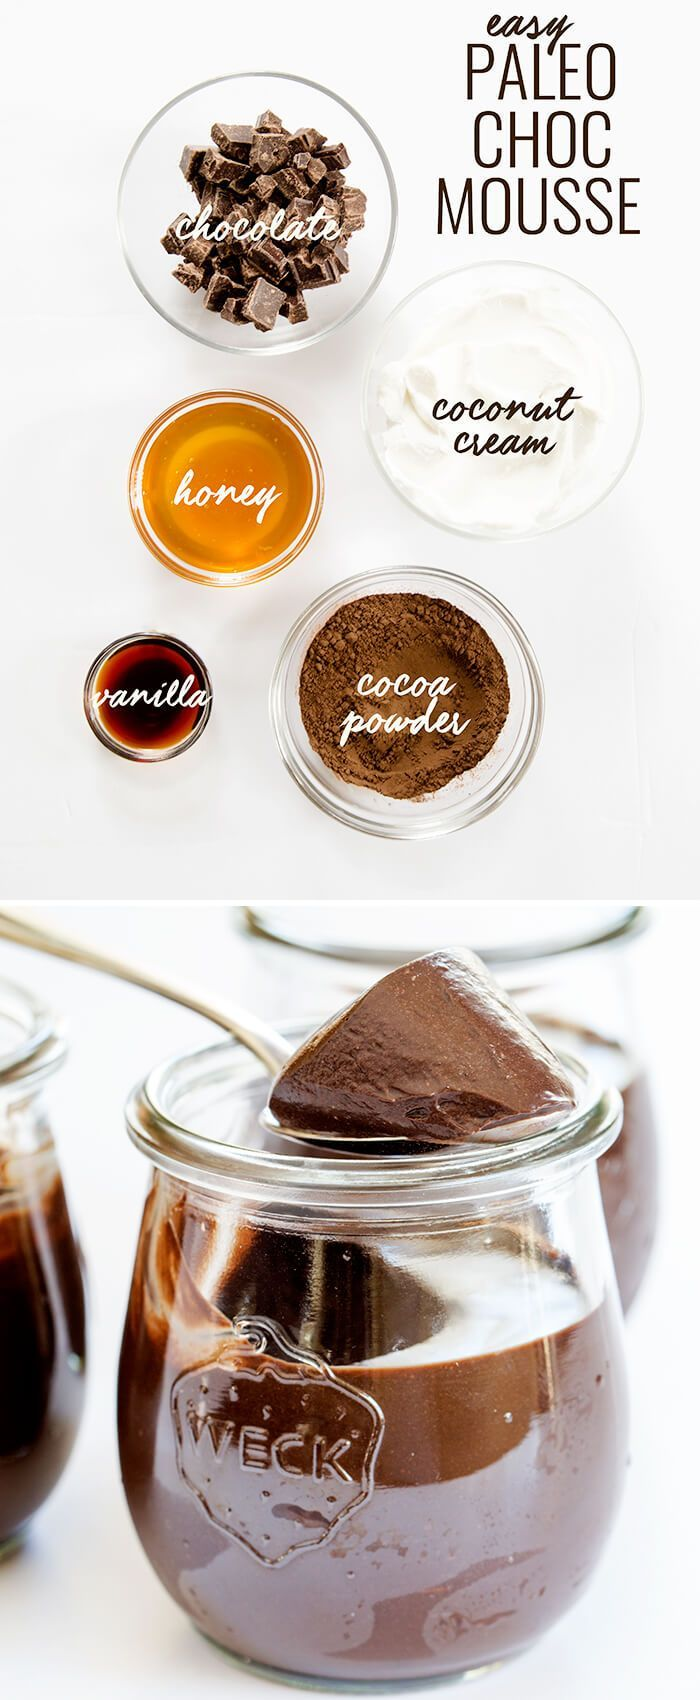 Smooth and creamy Paleo chocolate mousse, made with chocolate, coconut cream, cocoa powder, honey and vanilla. Just blend it and let it set! http://glutenfreeonashoestring.com/paleo-chocolate-mousse/